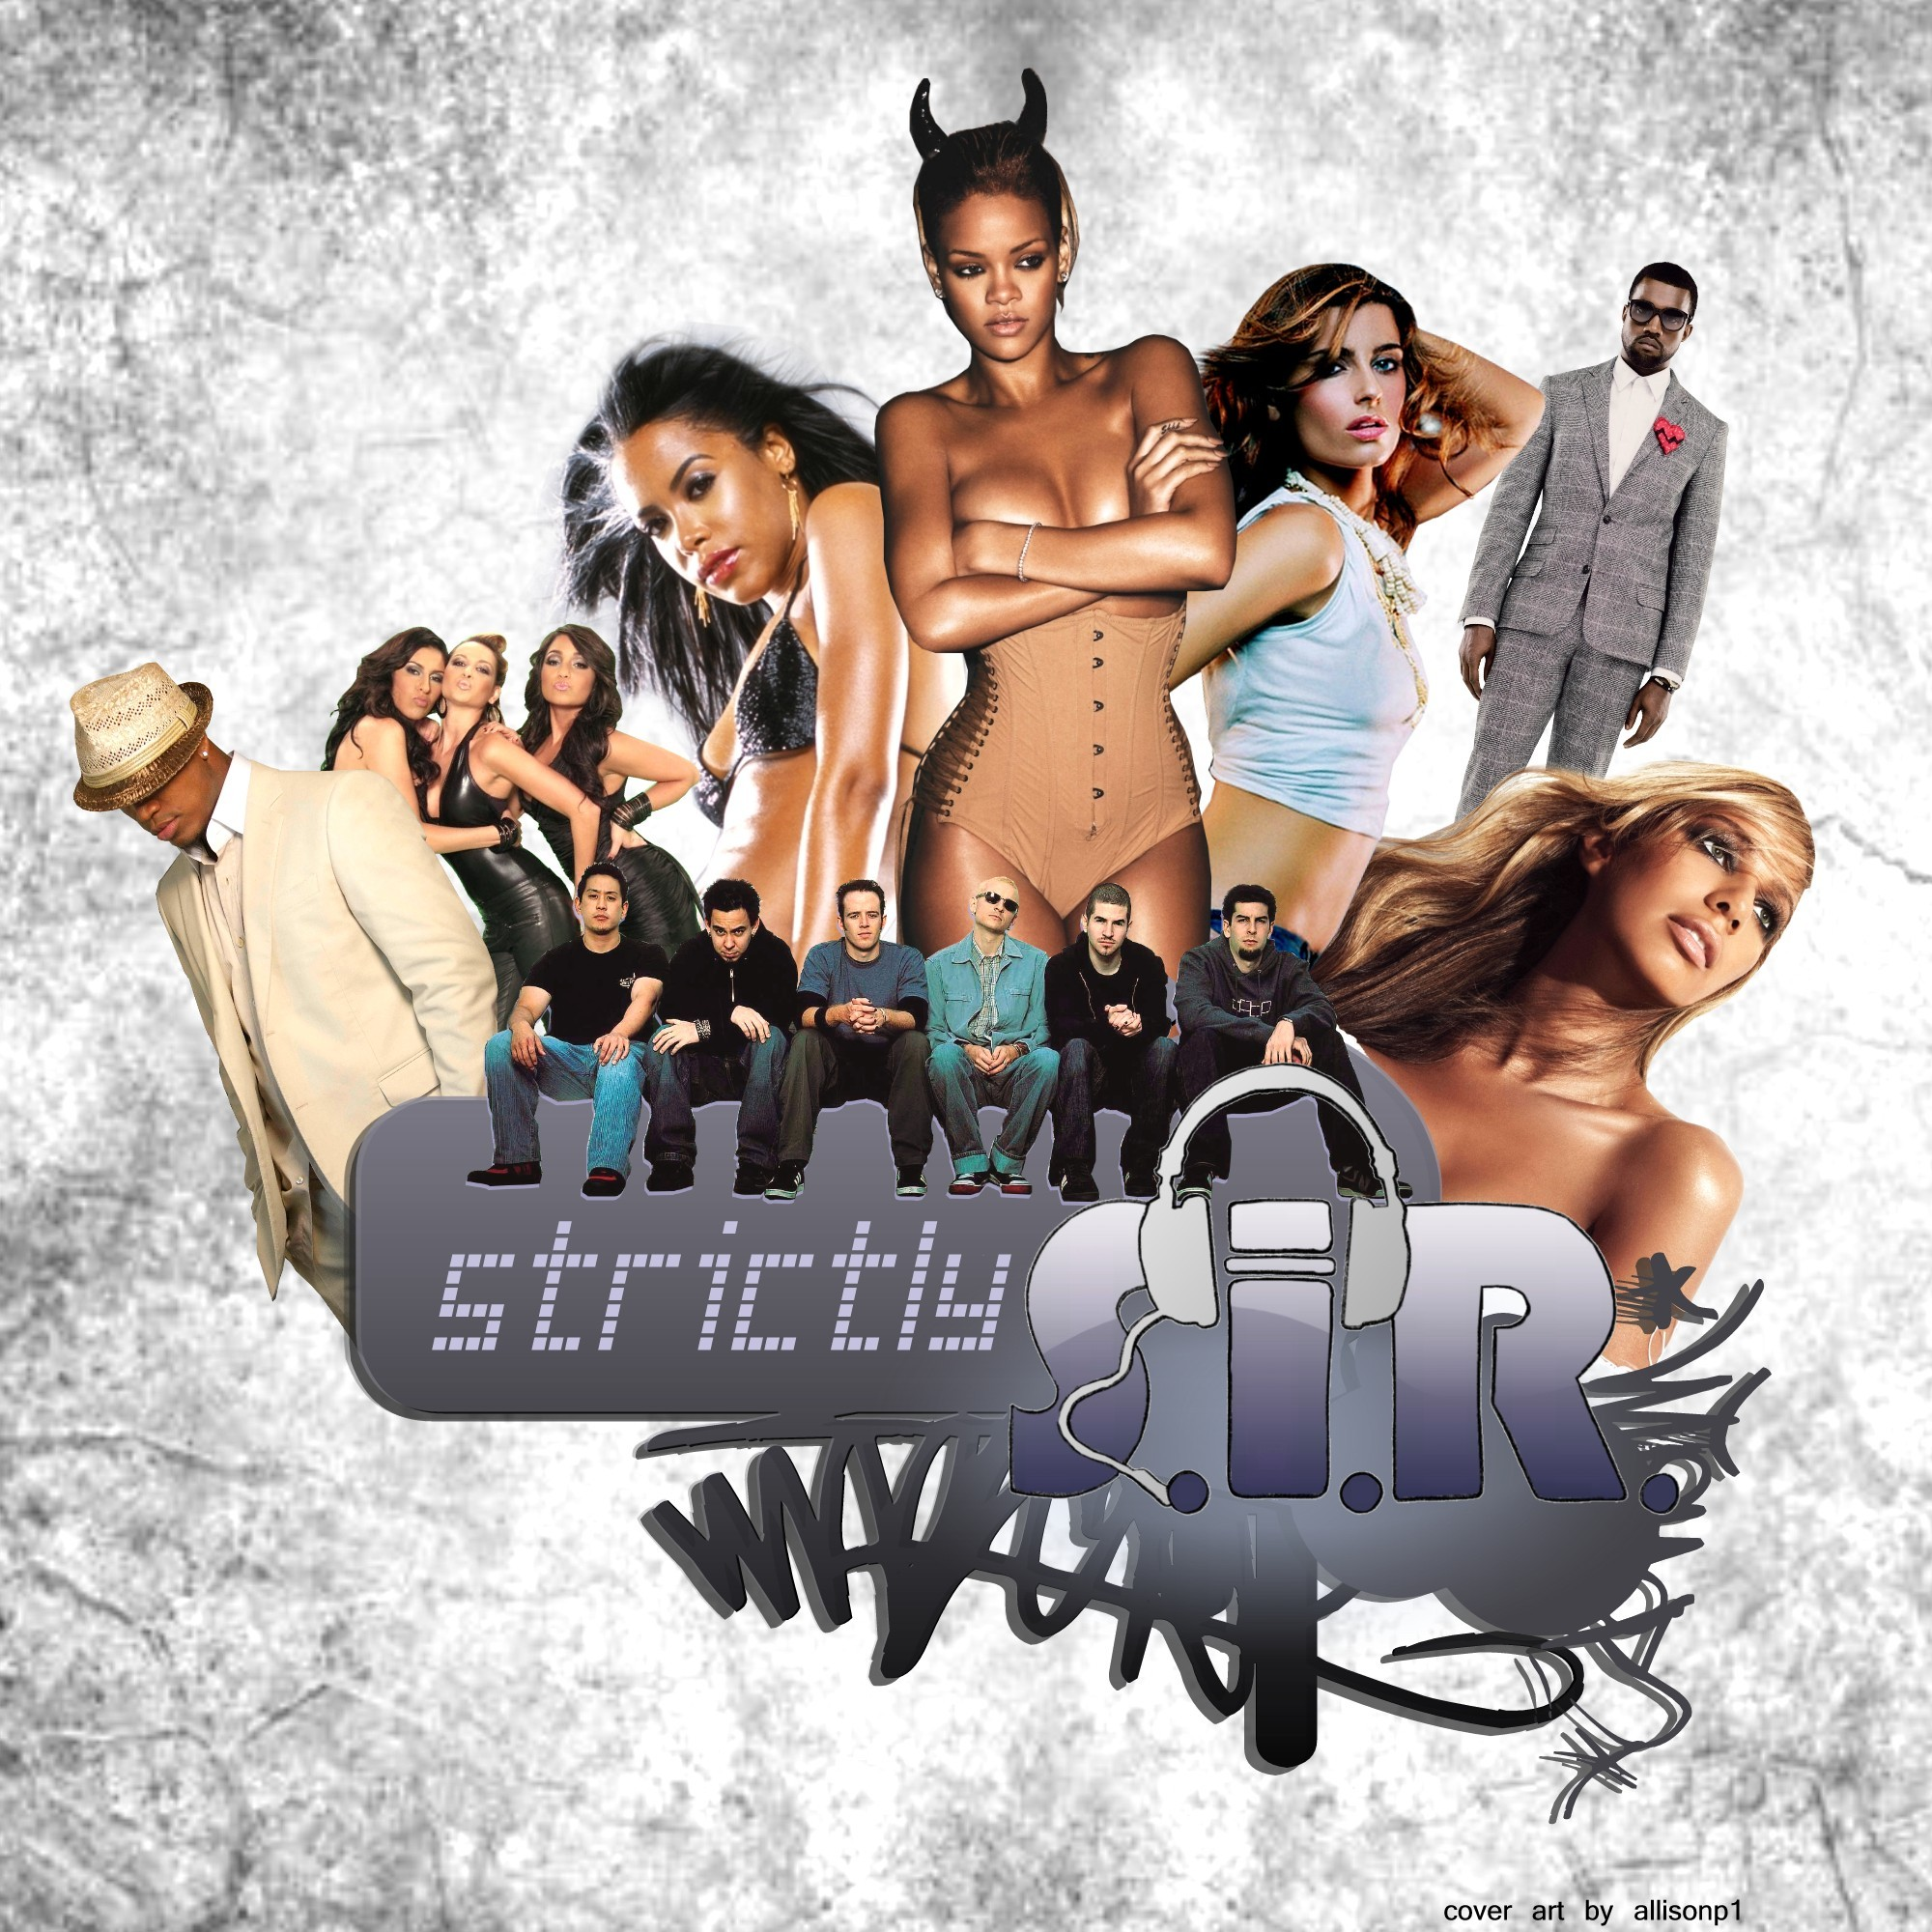 02 - Monrose vs. Katy Perry - Strictly Physical (You're Hot'n'Cold) (S.I.R. Remix)